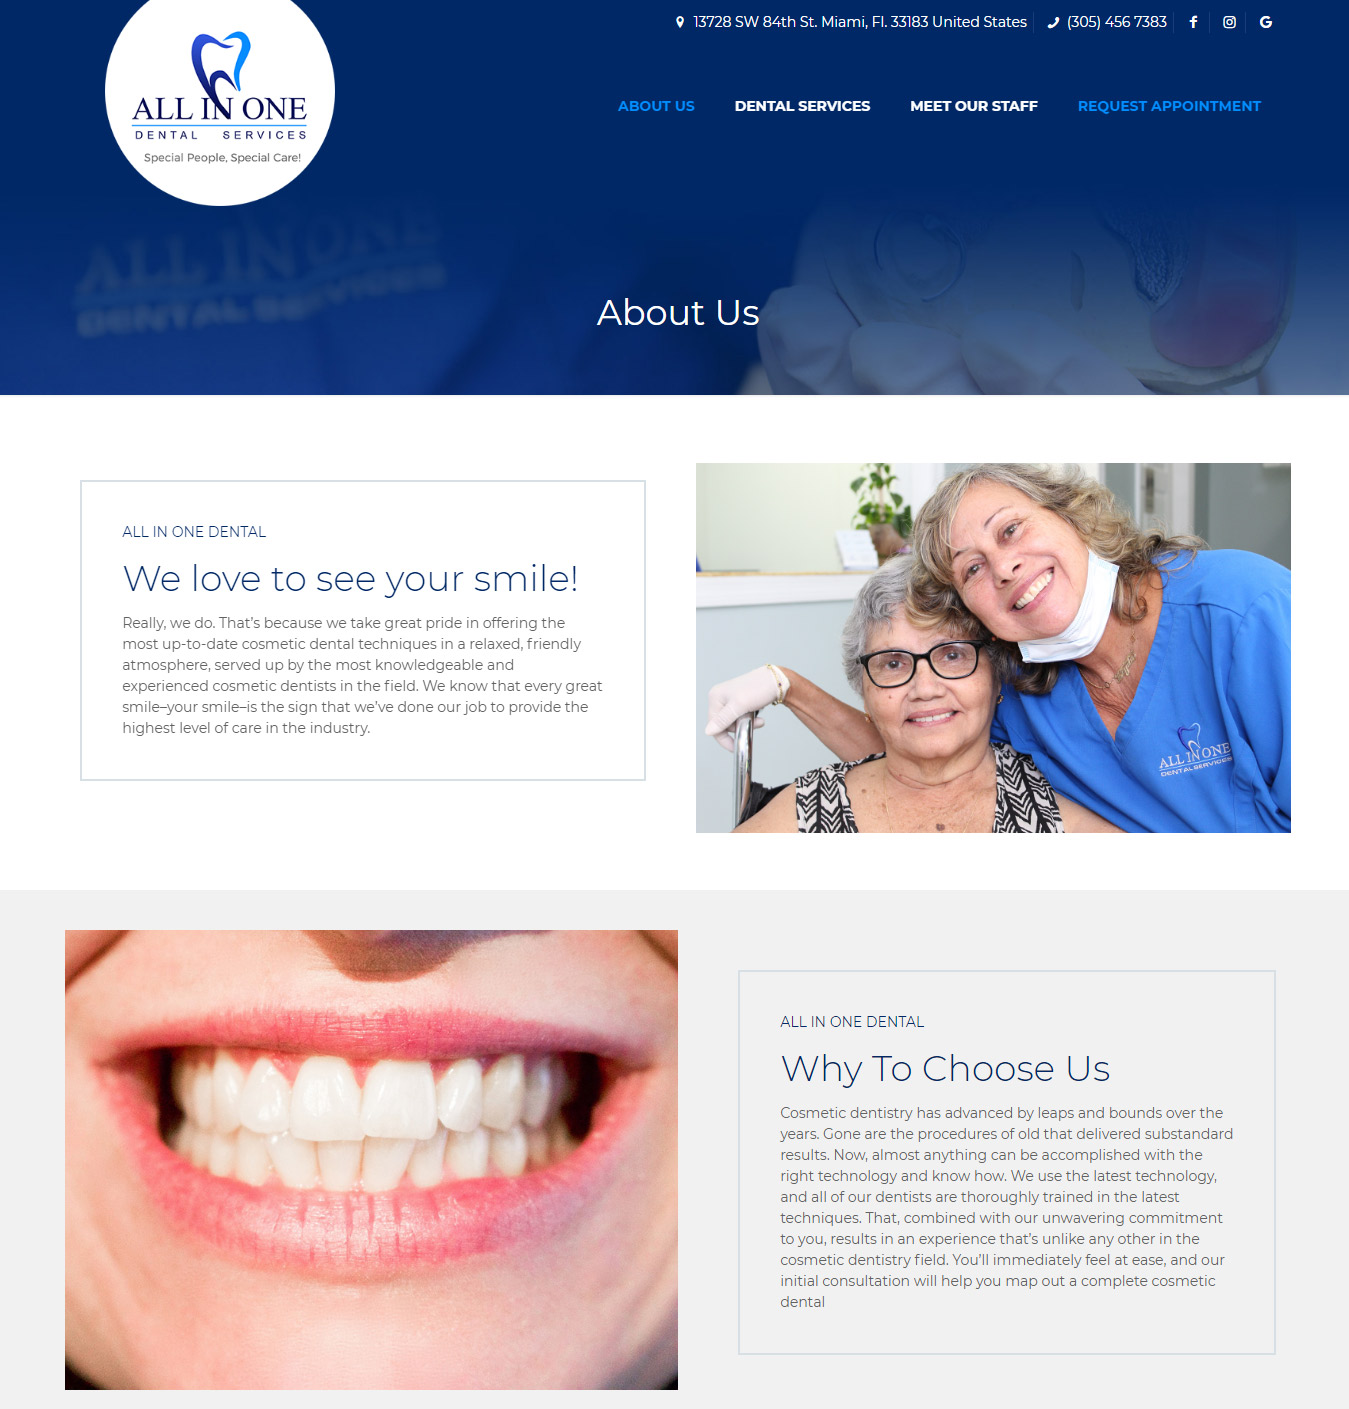 About-Us---All-In-One---Dental-Services3